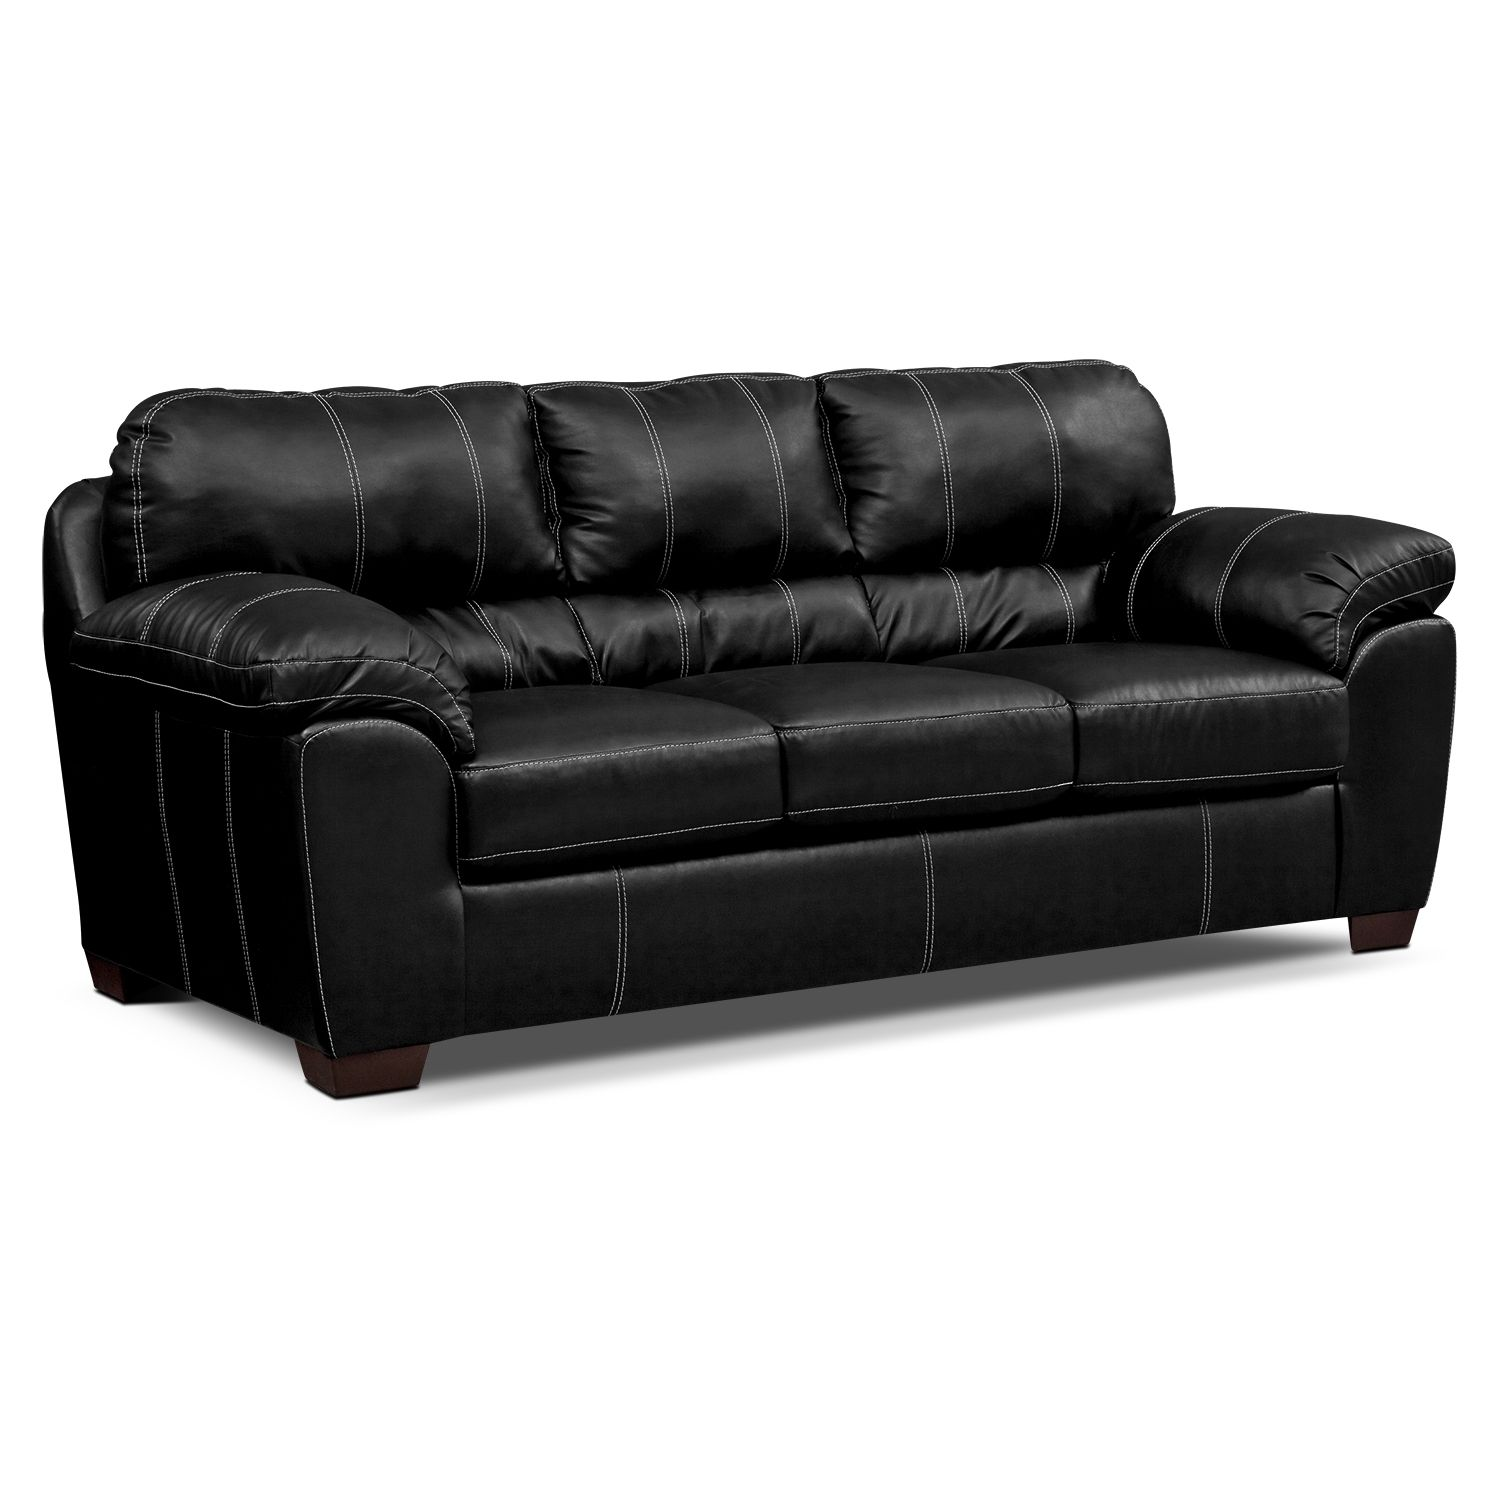 Leather Sleeper Sofa Gamer Colton Leather Sofa Value City Furniture